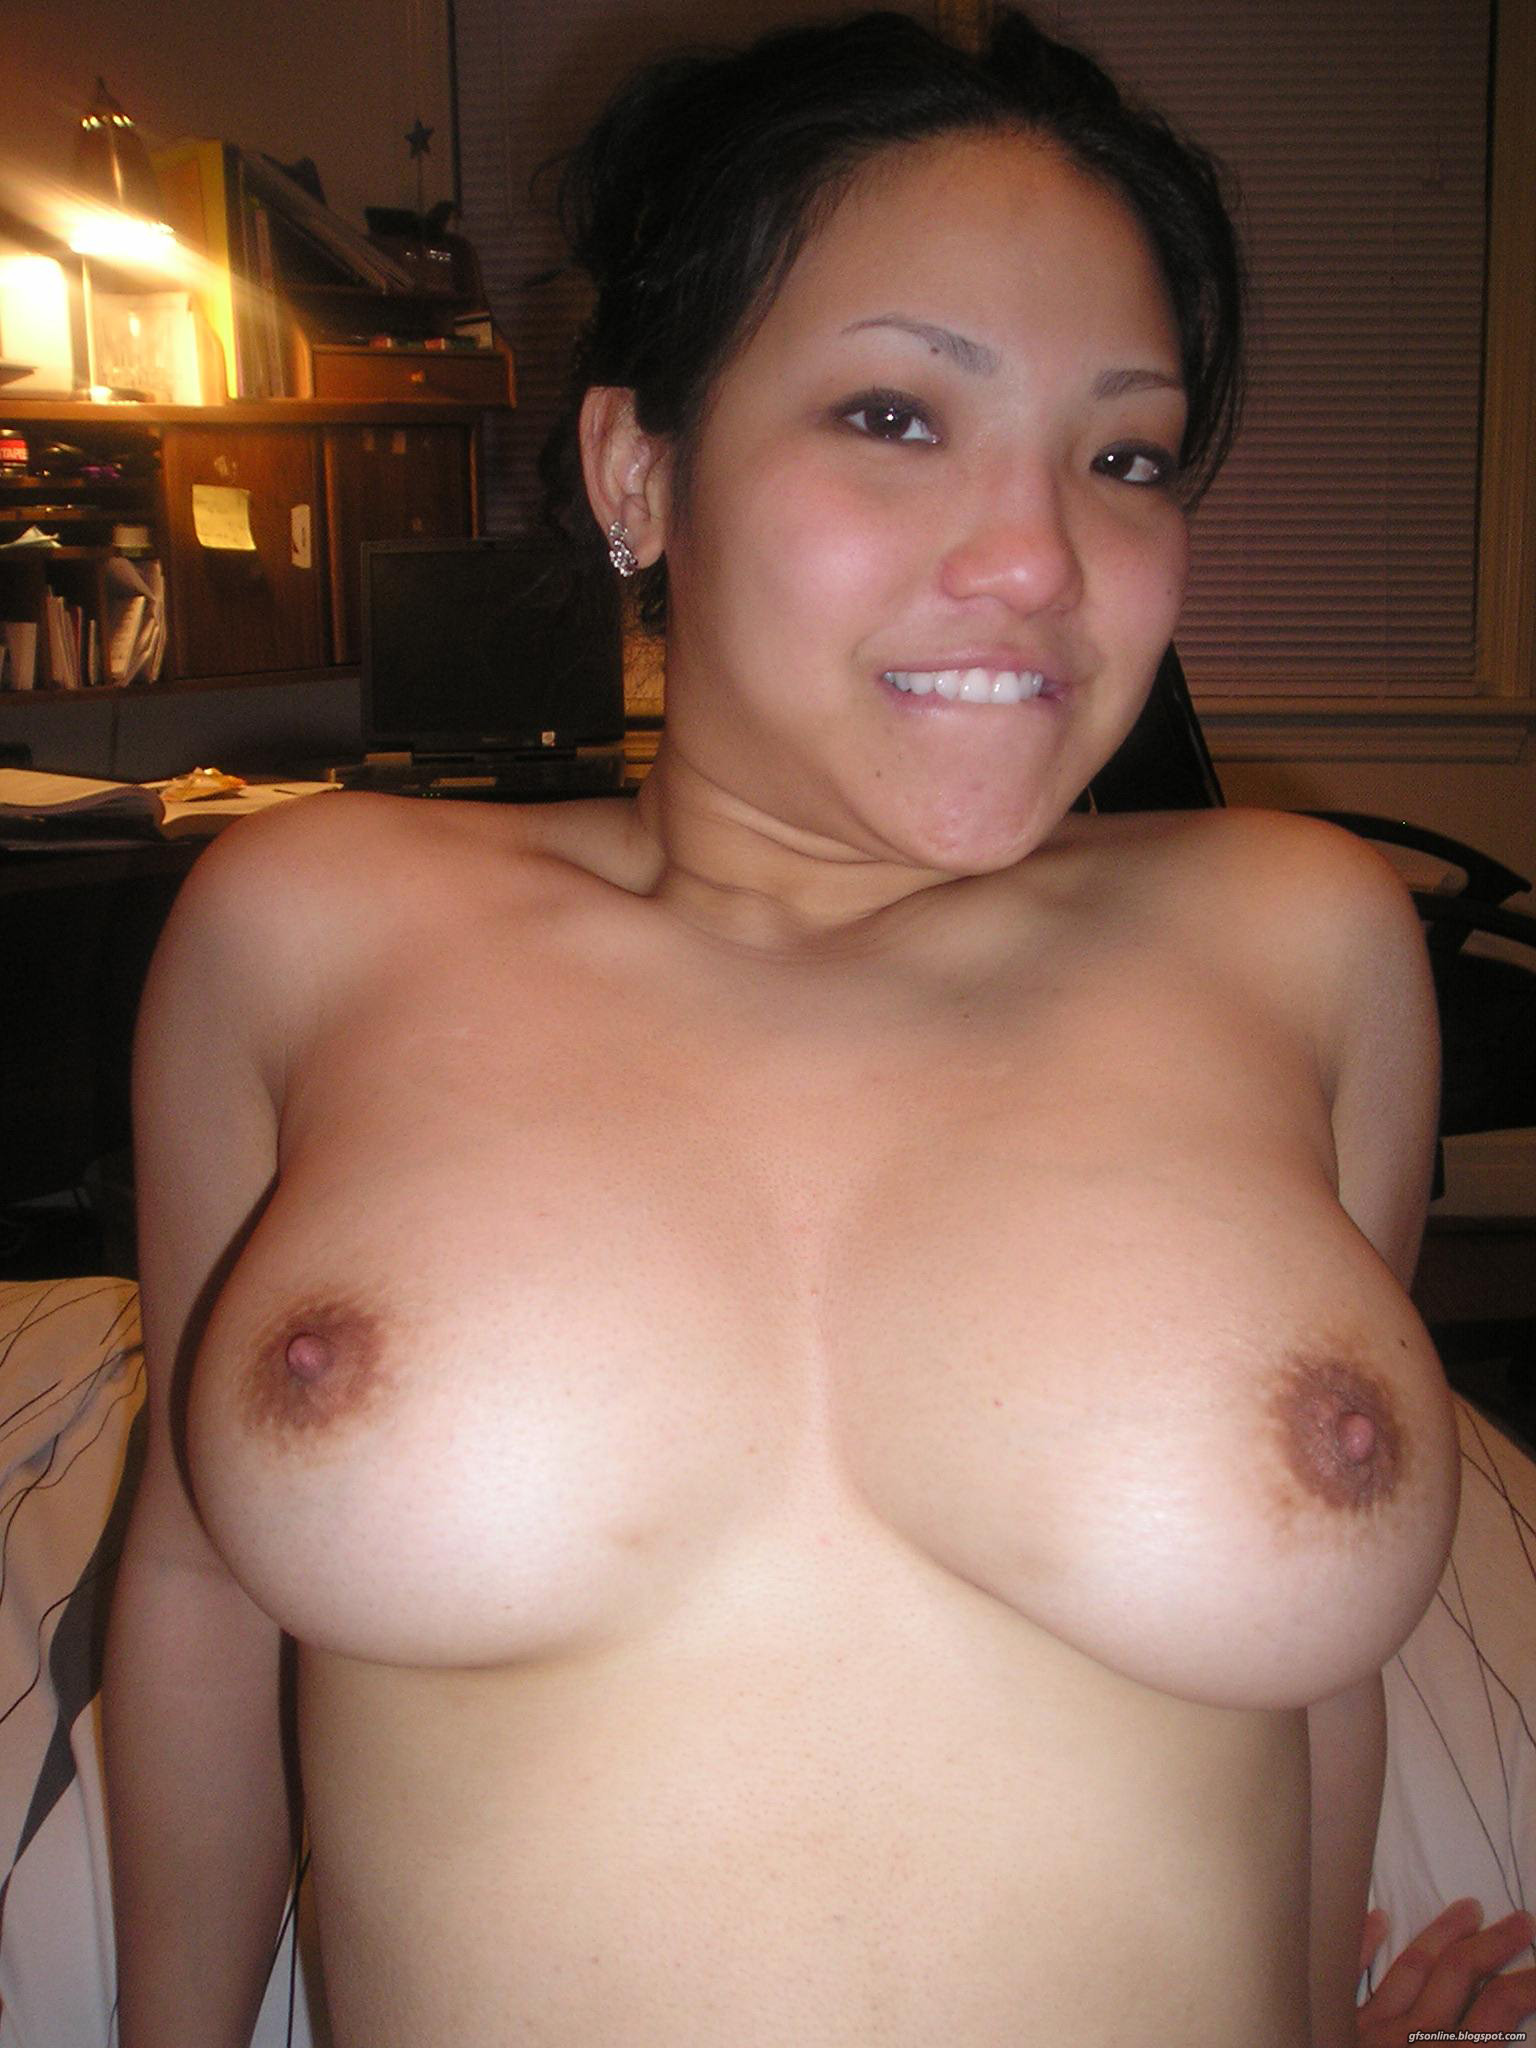 Seems brilliant cute nude asian milf consider, what